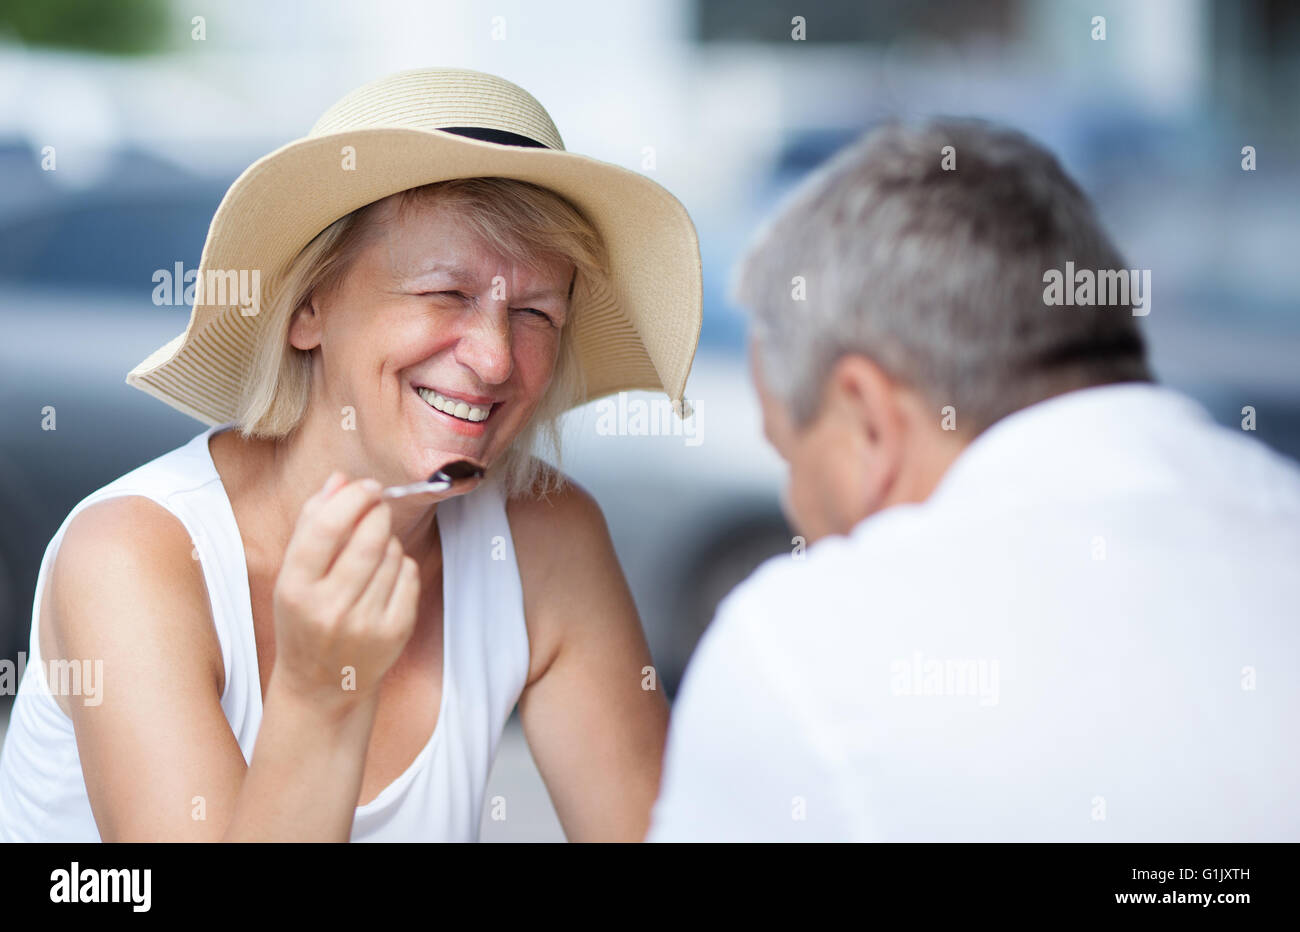 Smiling happy woman relaxing with her husband - Stock Image